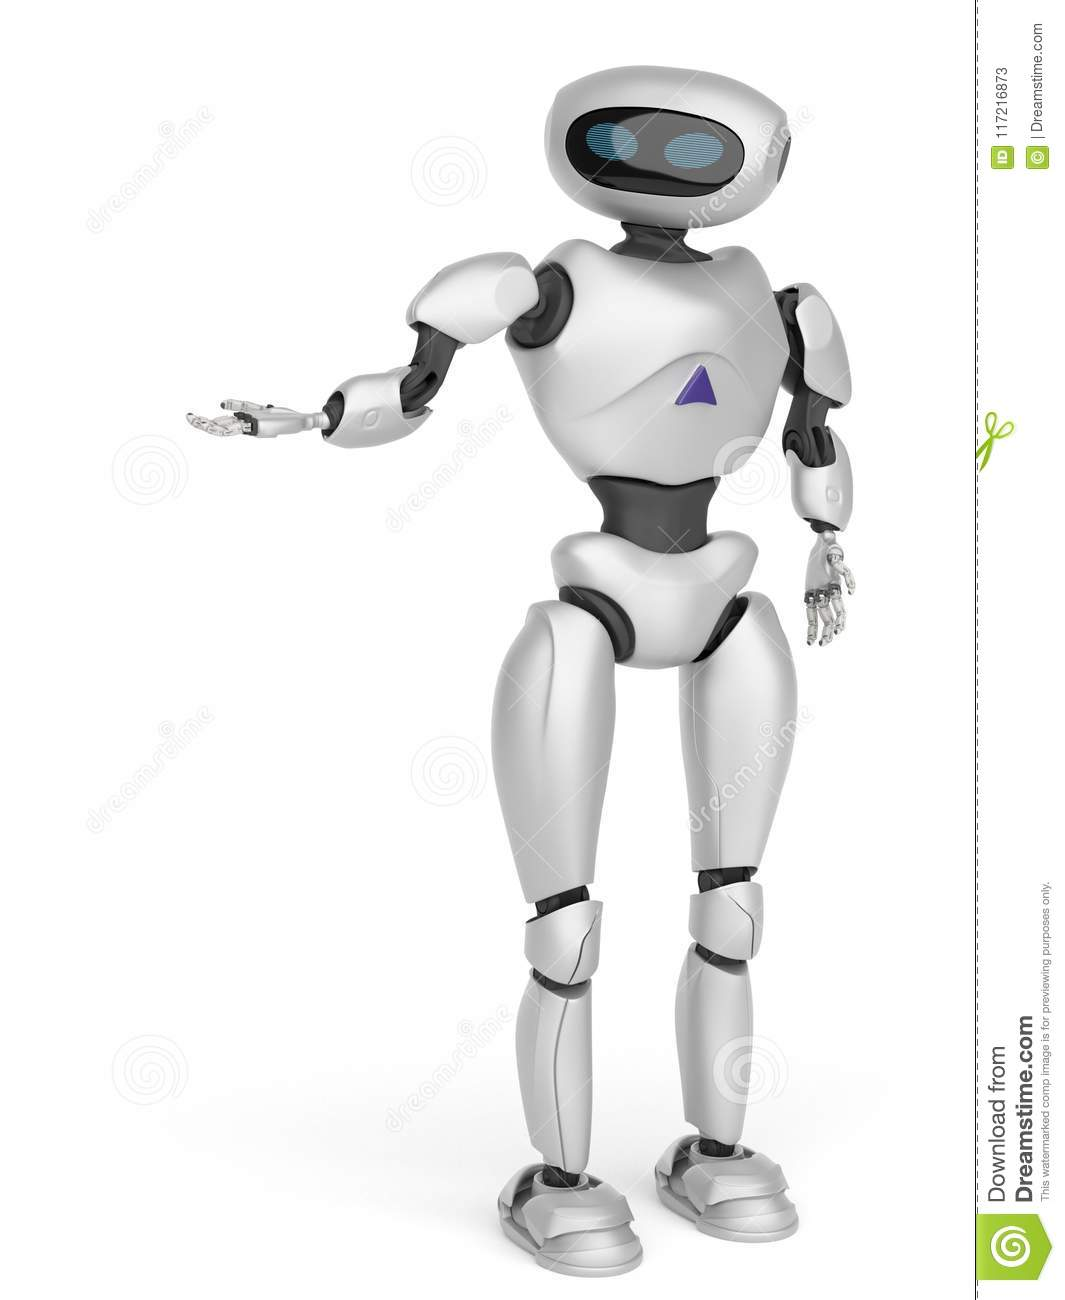 Modern android robot on a white background. 3D rendering.